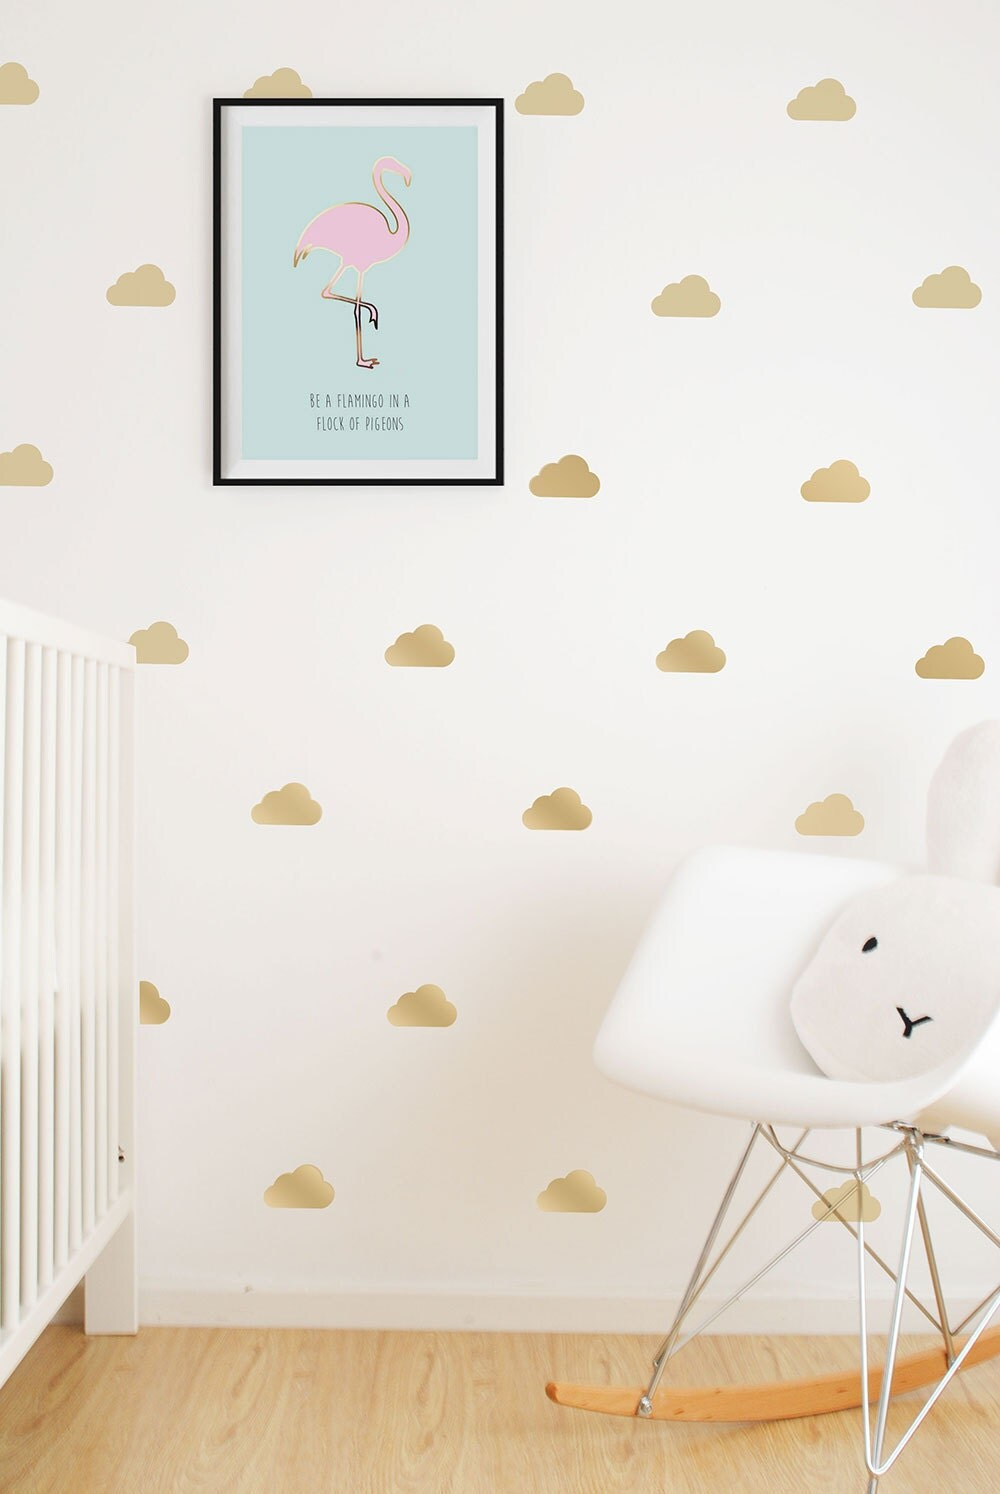 Gold Clouds Wall Vinyl Stickers Decals